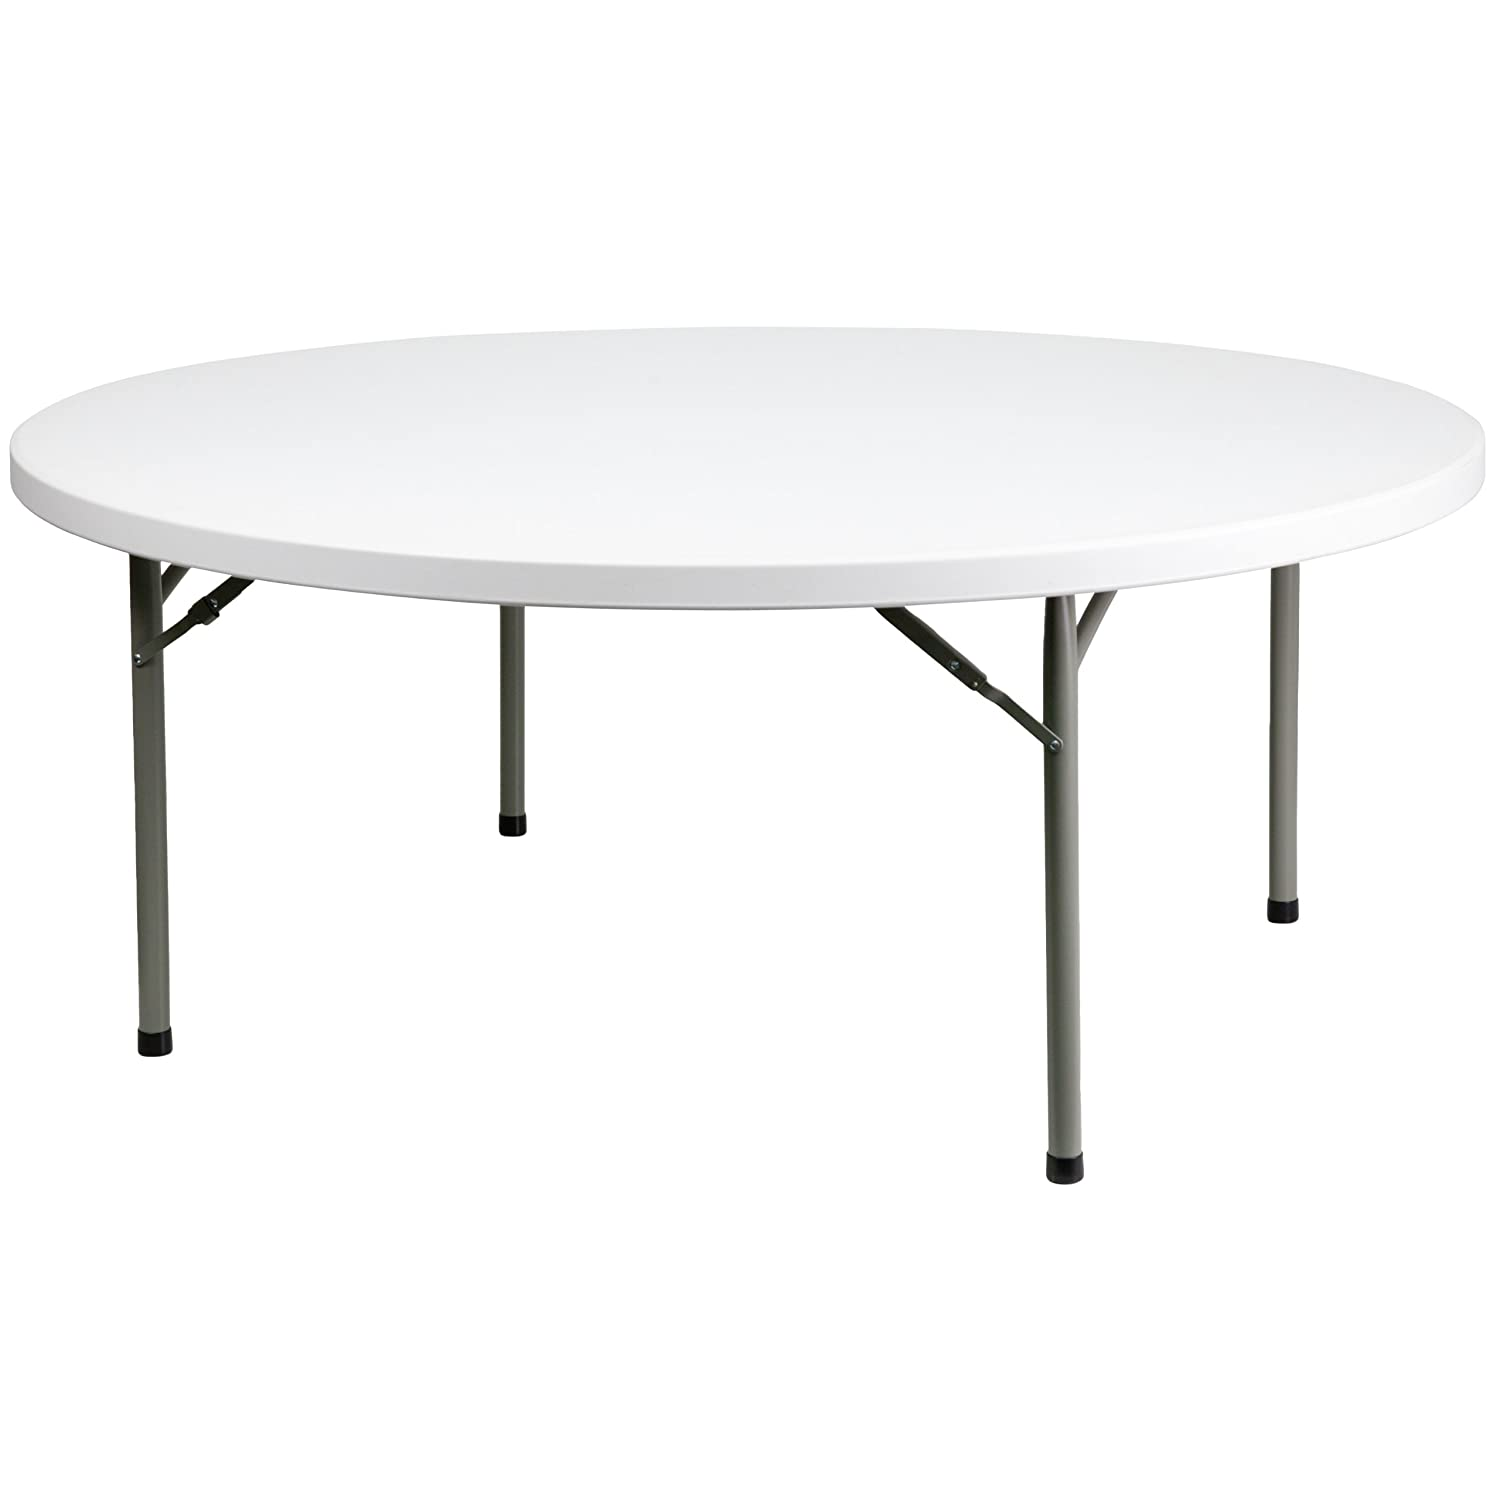 Flash Furniture Granite 32-Inch Round Folding Table, White DAD-YCZ-80R-GW-GG